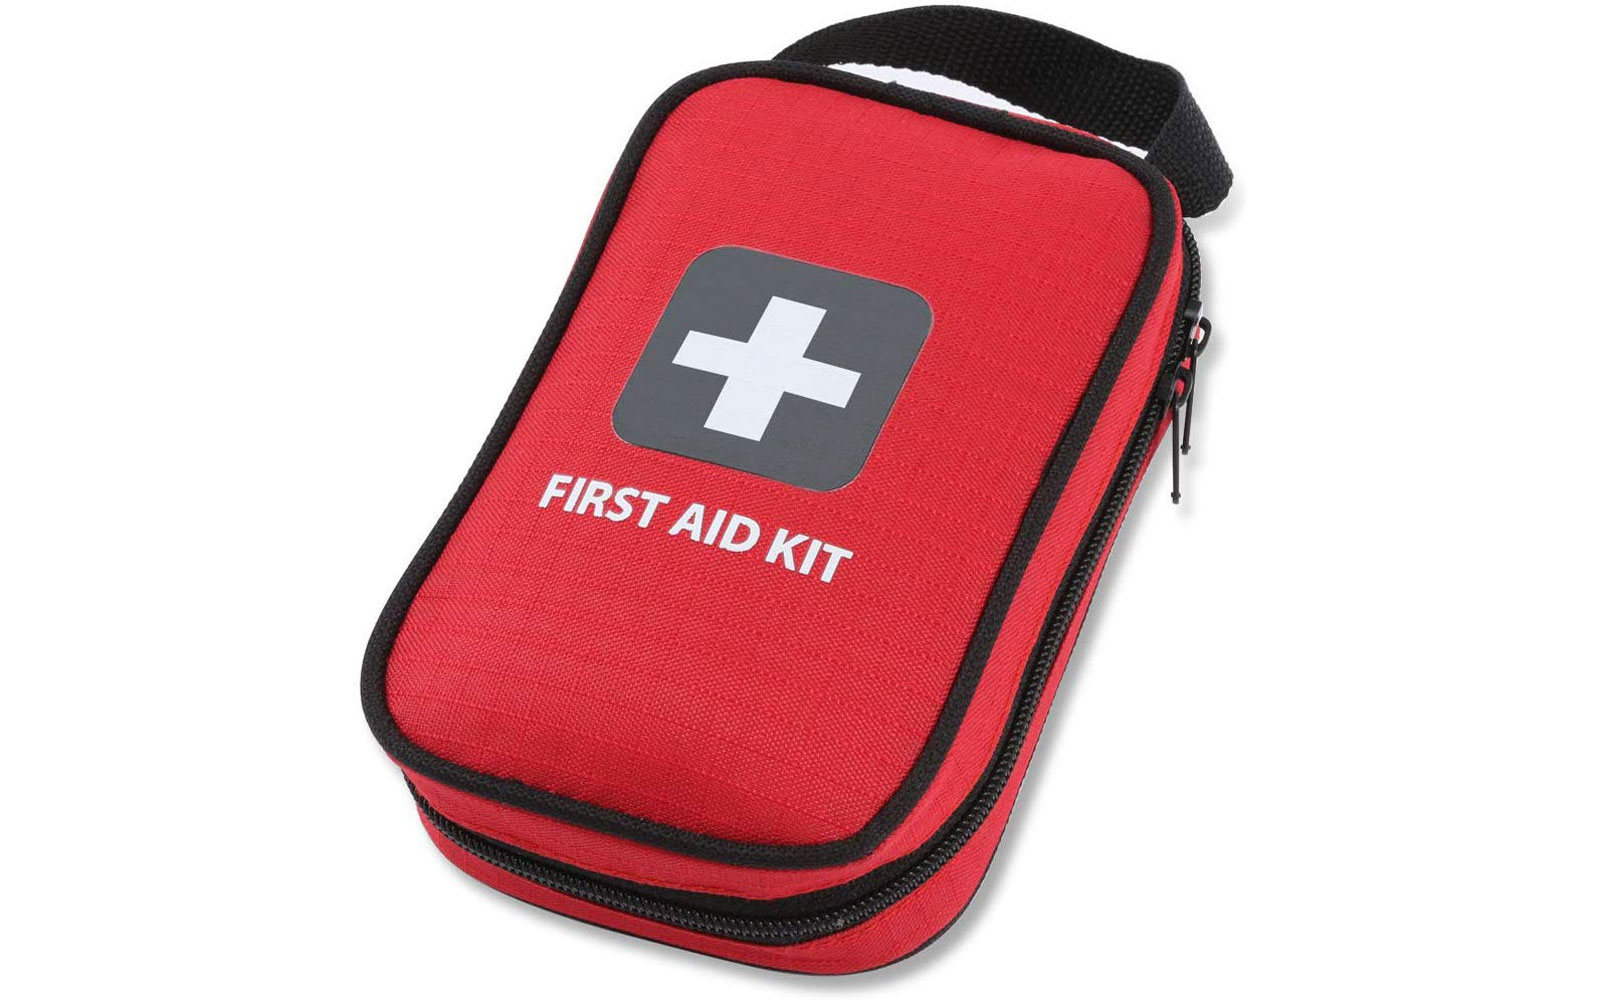 Red travel first aid kit